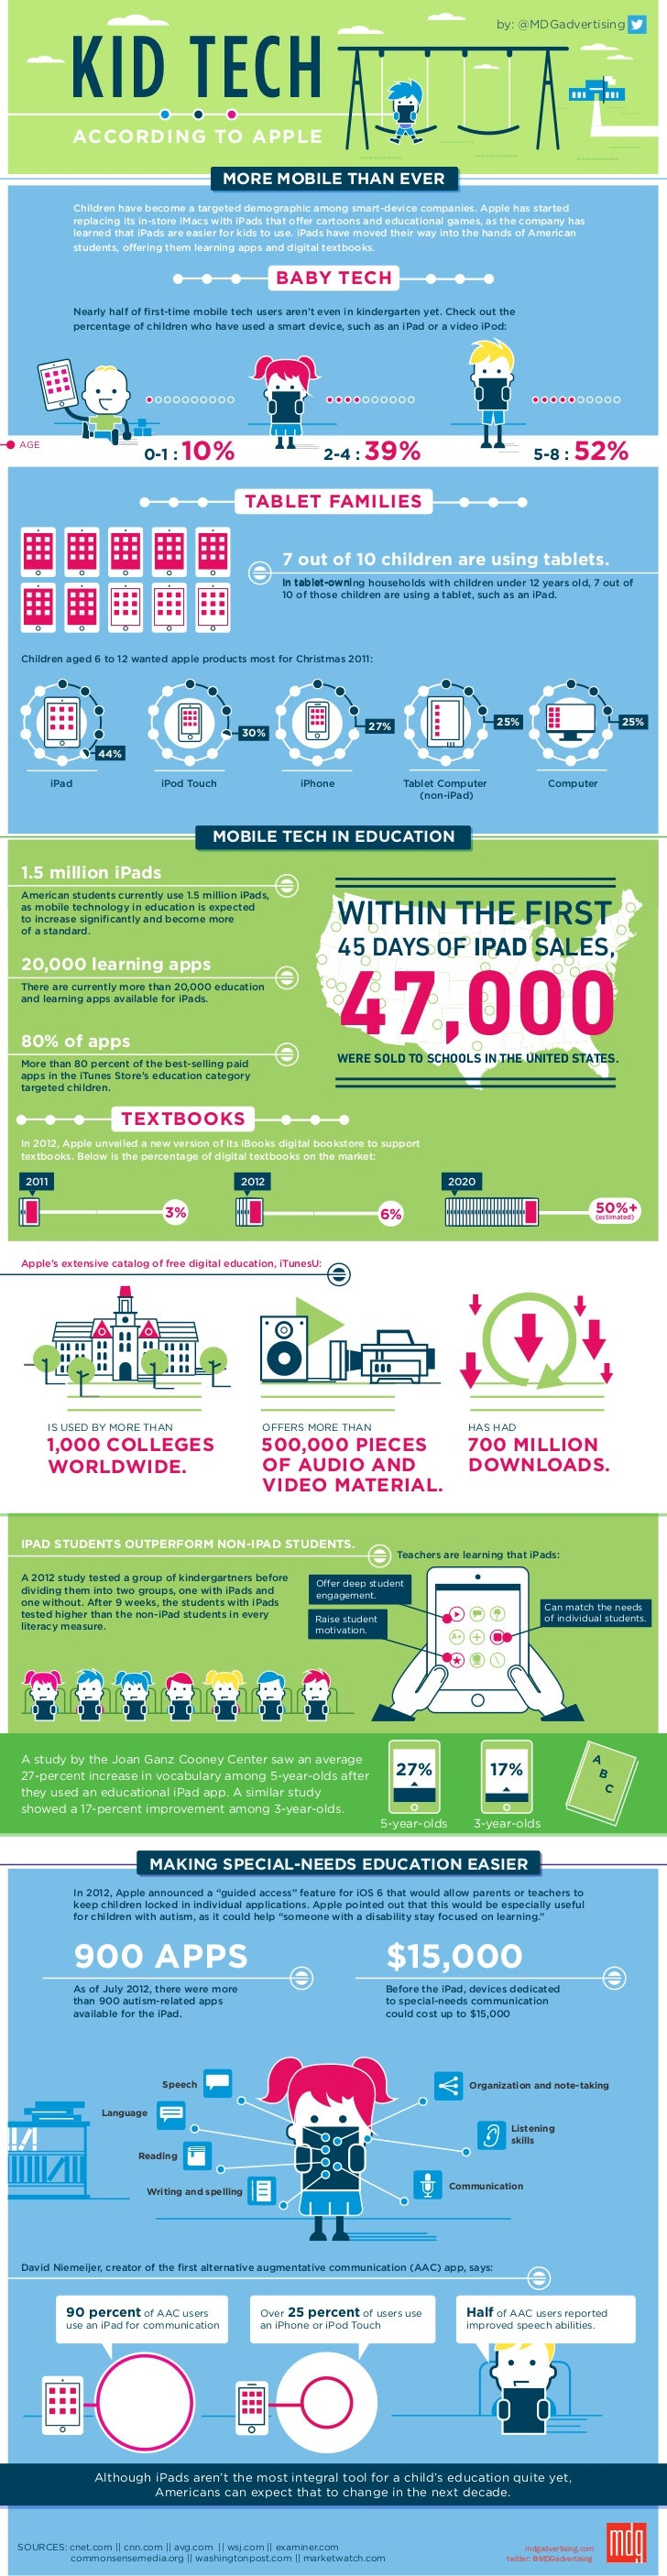 Kid Tech According To Apple [Infographic]